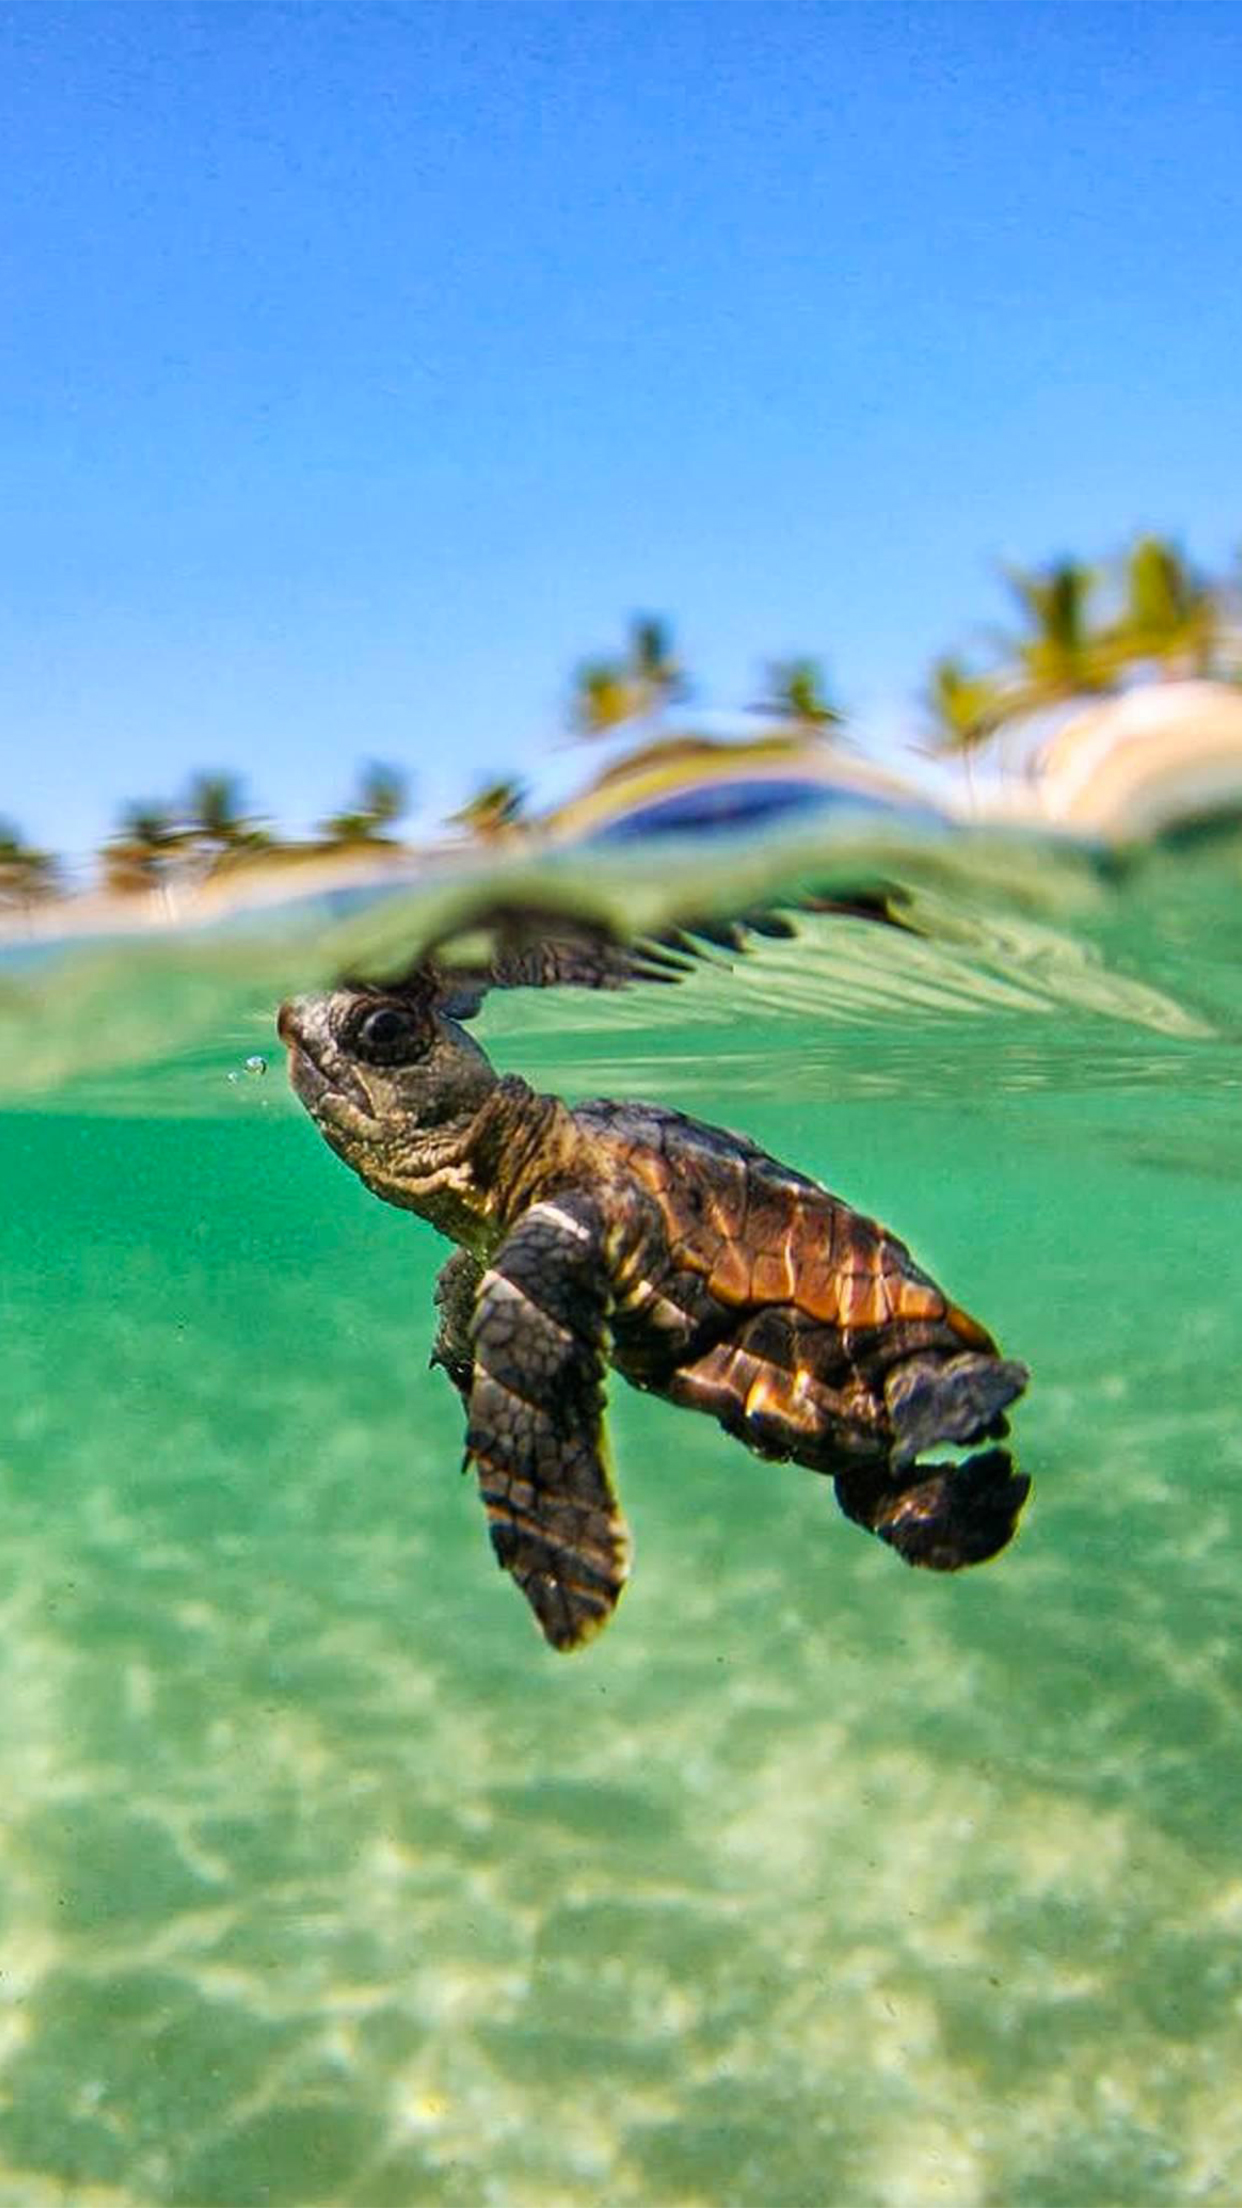 Cute Turtle Wallpaper For Iphone Turtle Lagon Wallpaper For Iphone X 8 7 6 Free